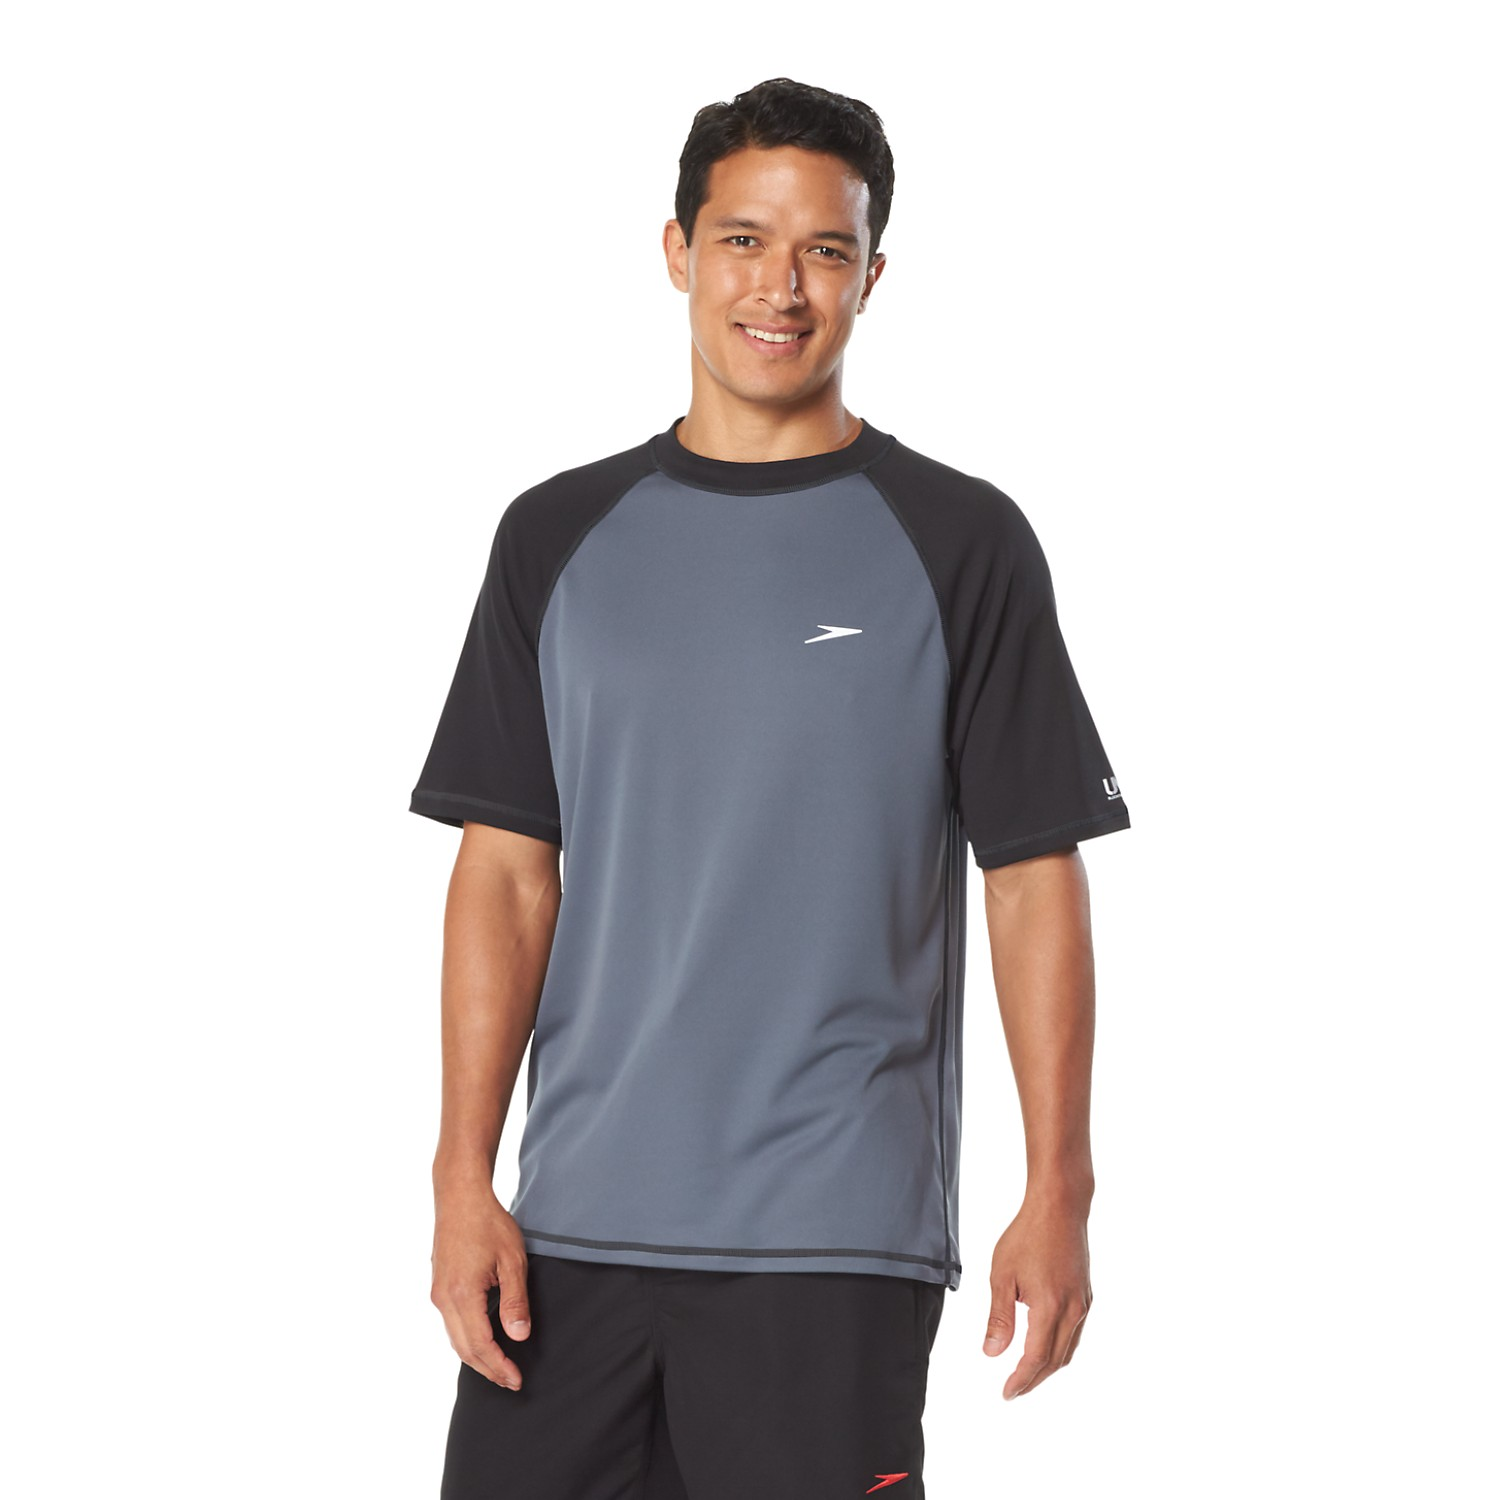 Mens Easy Short Sleeve Swim Shirt (Black/Grey)